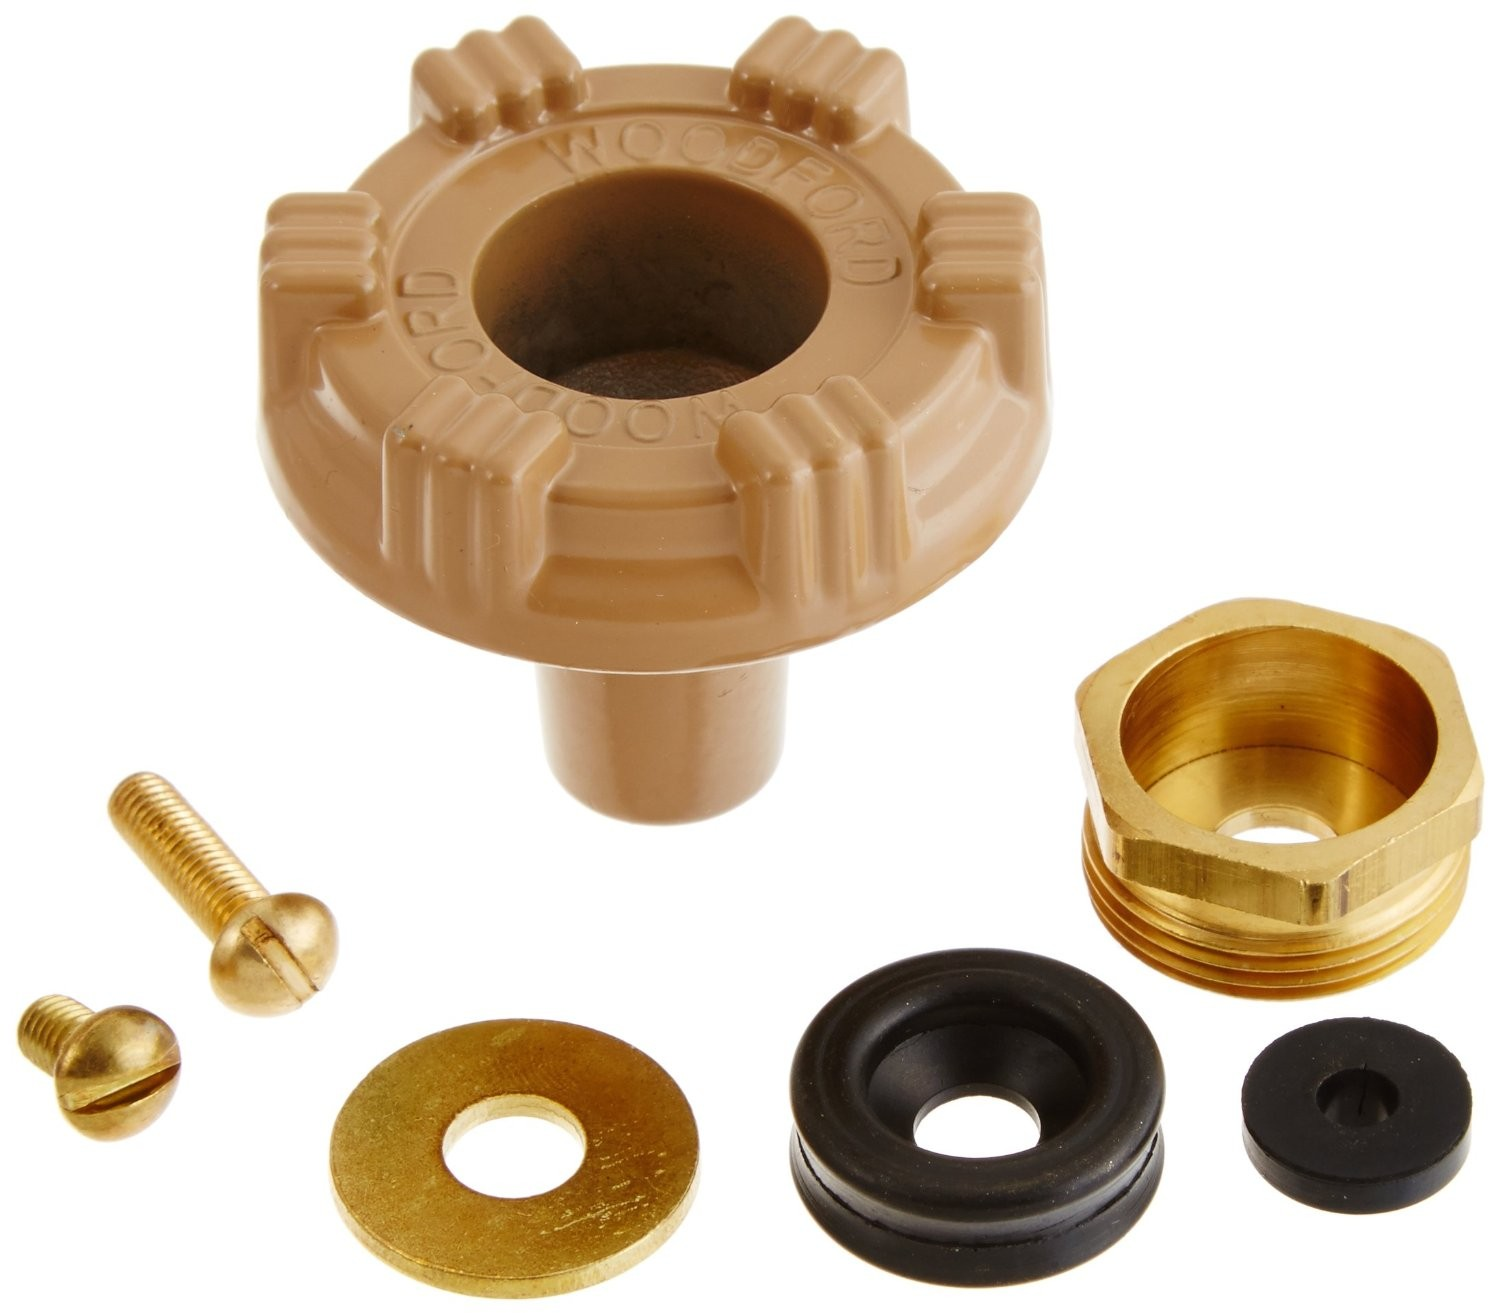 Buy The Woodford RK14MH Repair Kit Outside Faucet 14 18